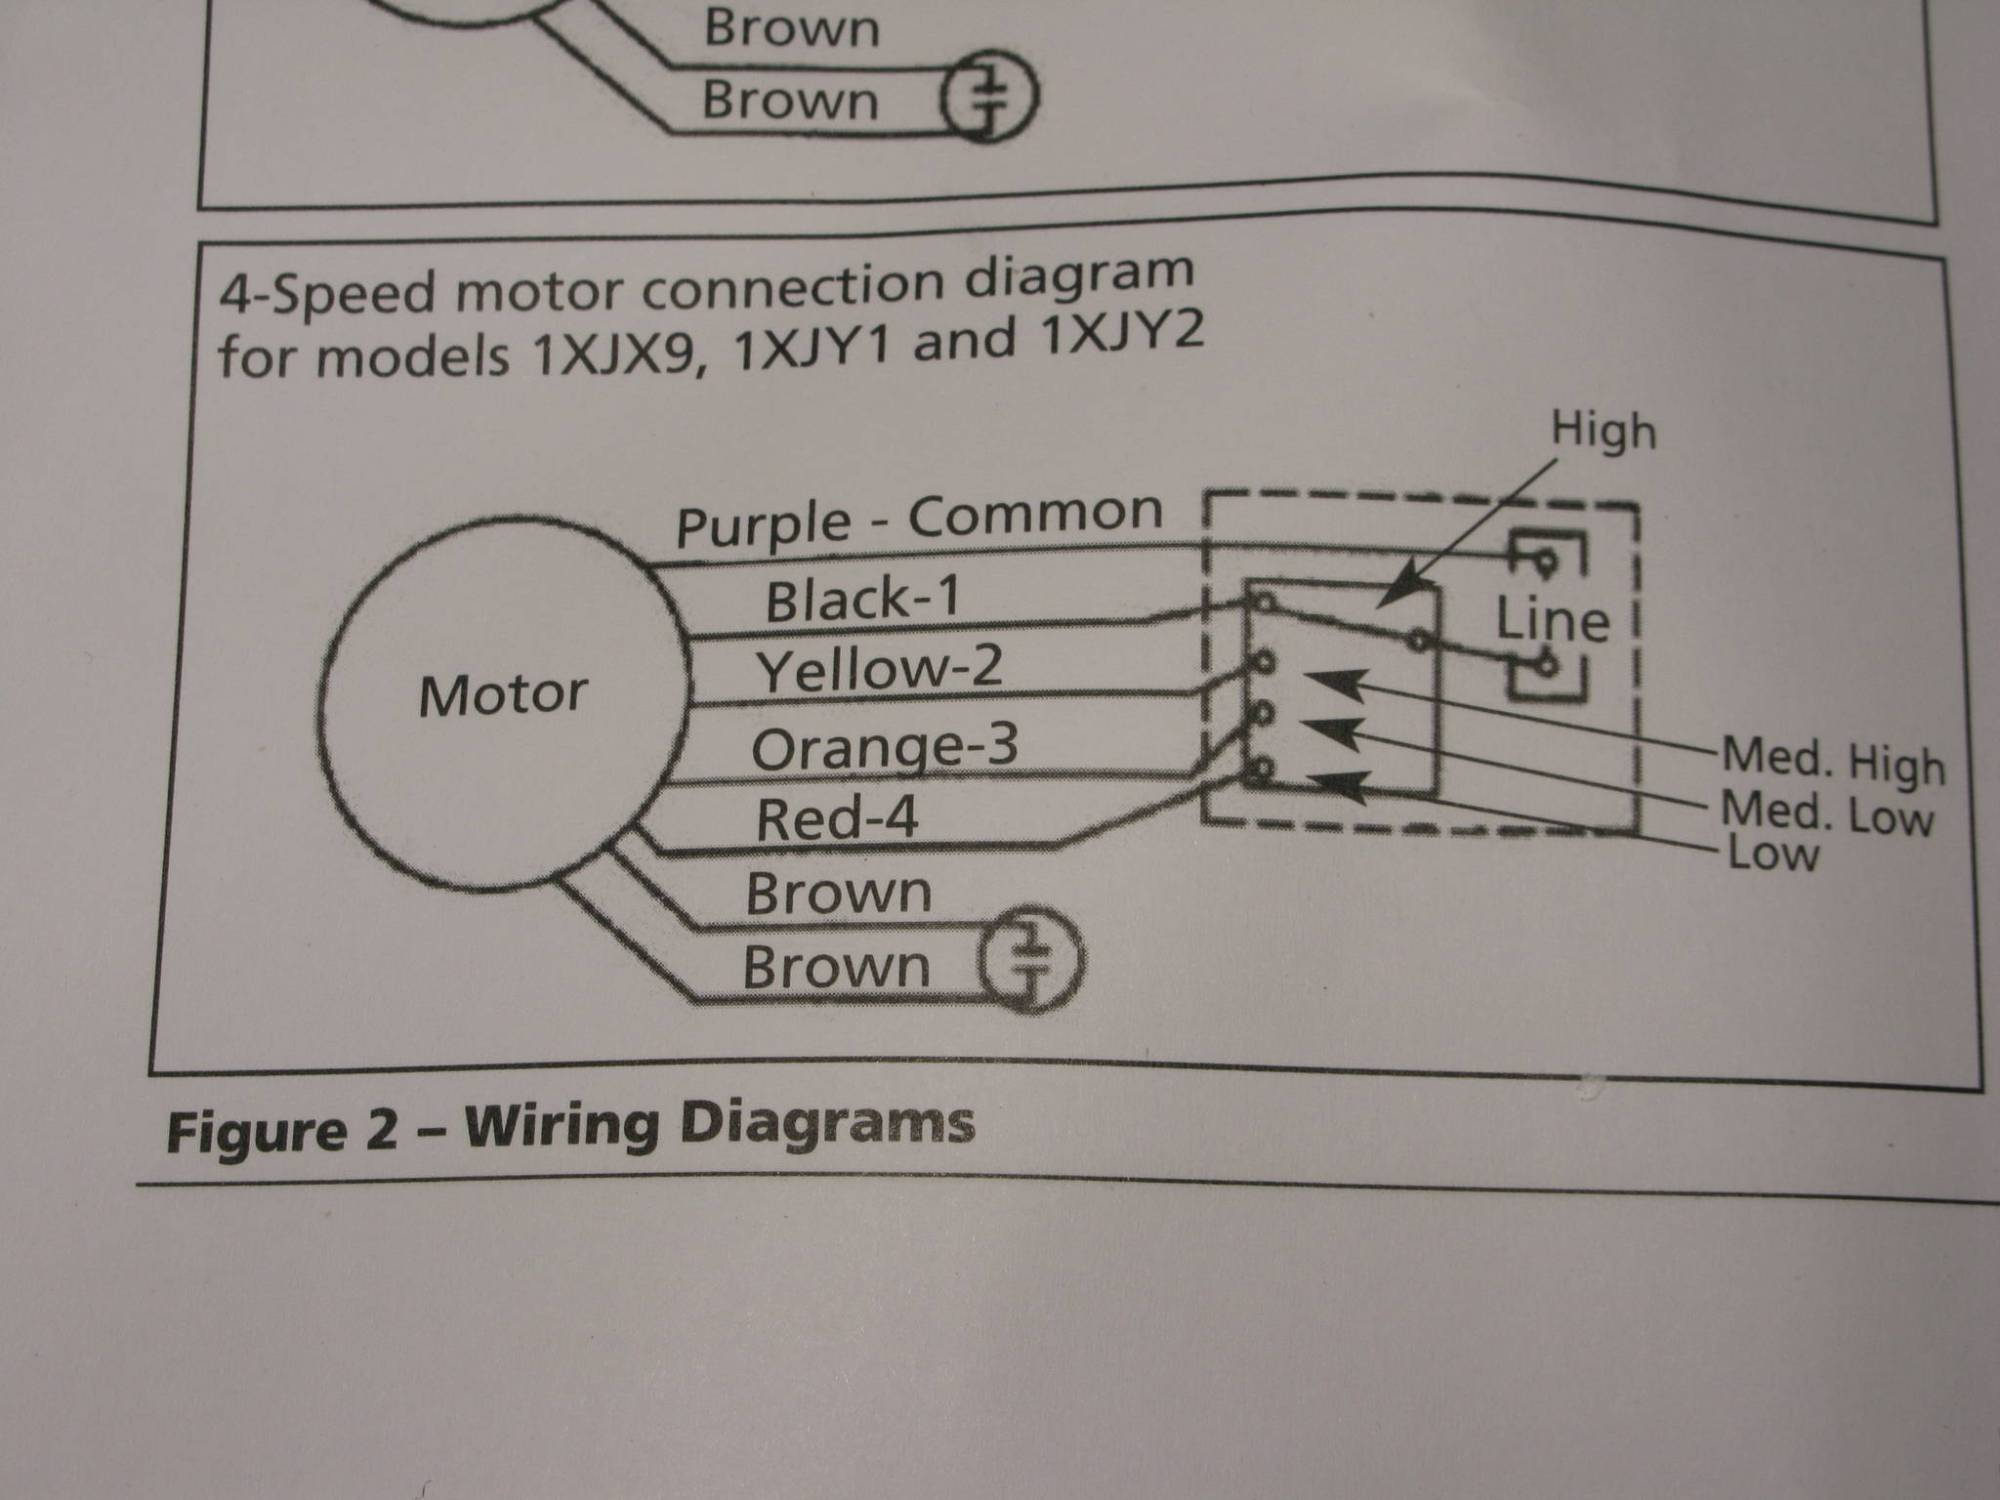 hight resolution of dayton fan wiring diagram wiring diagram site dayton ceiling fan wiring diagram dayton fan wiring diagram source dayton condenser fan motor